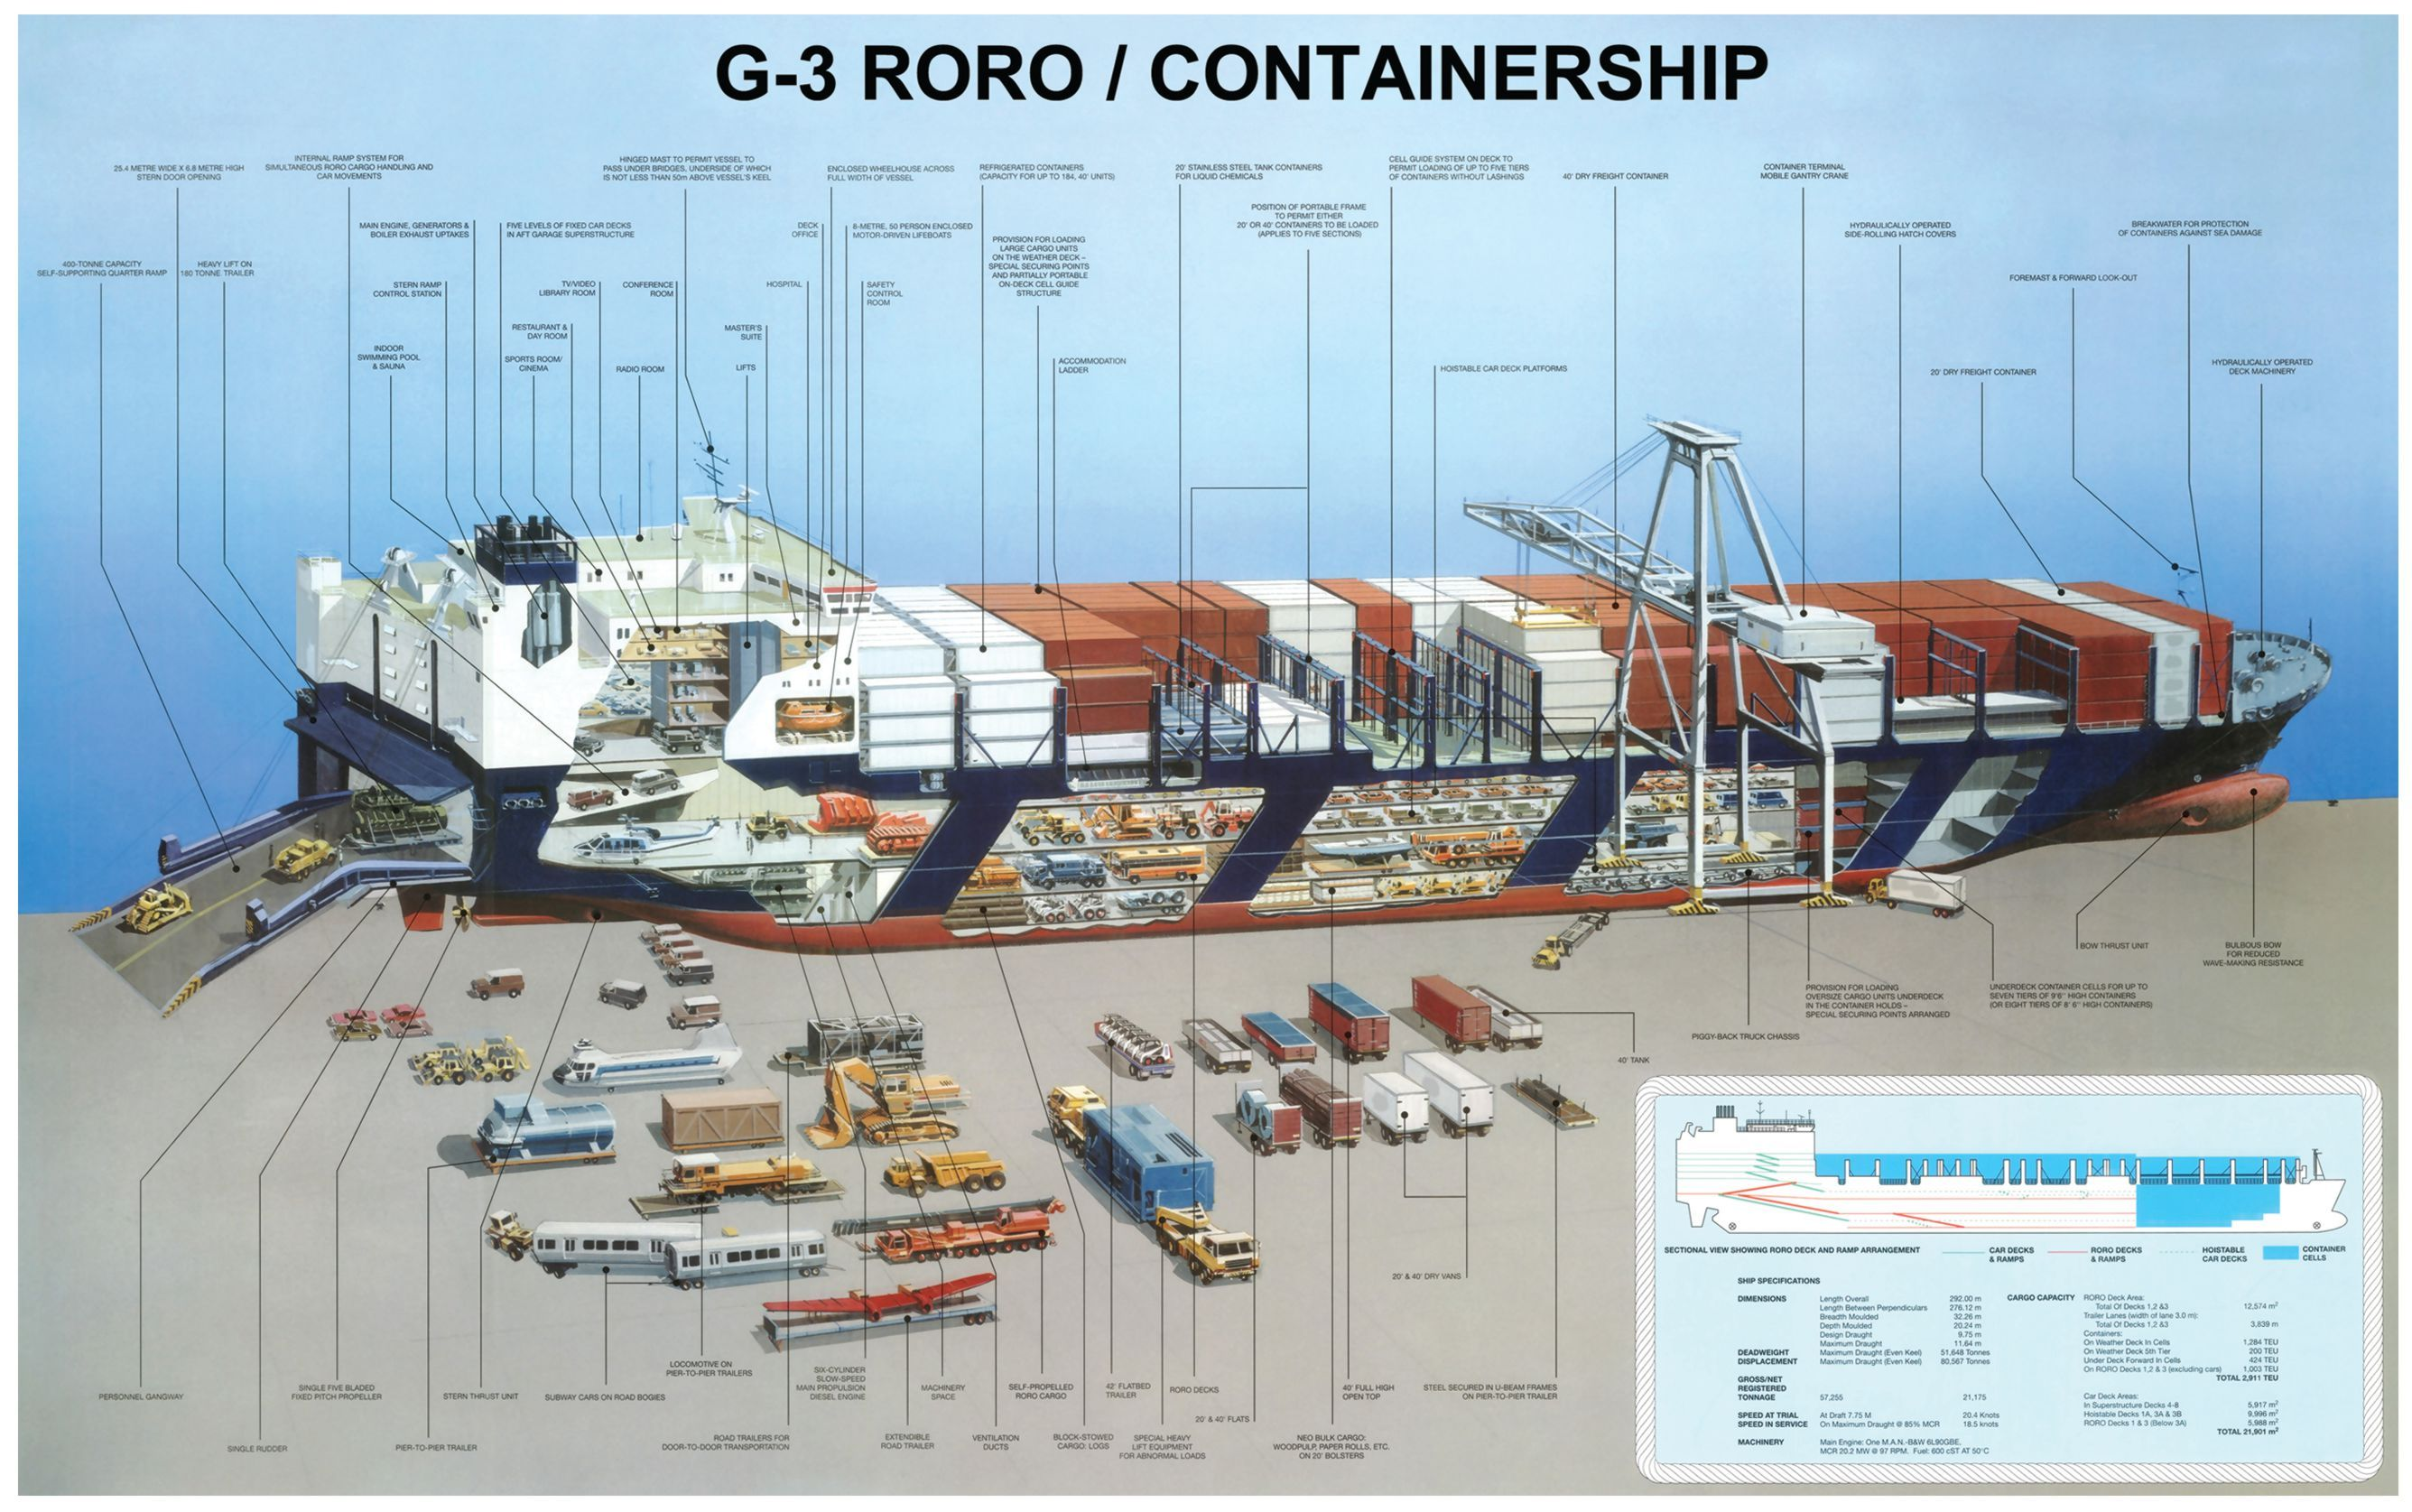 g 3 roro container ship cutaway drawing [ 2672 x 1675 Pixel ]